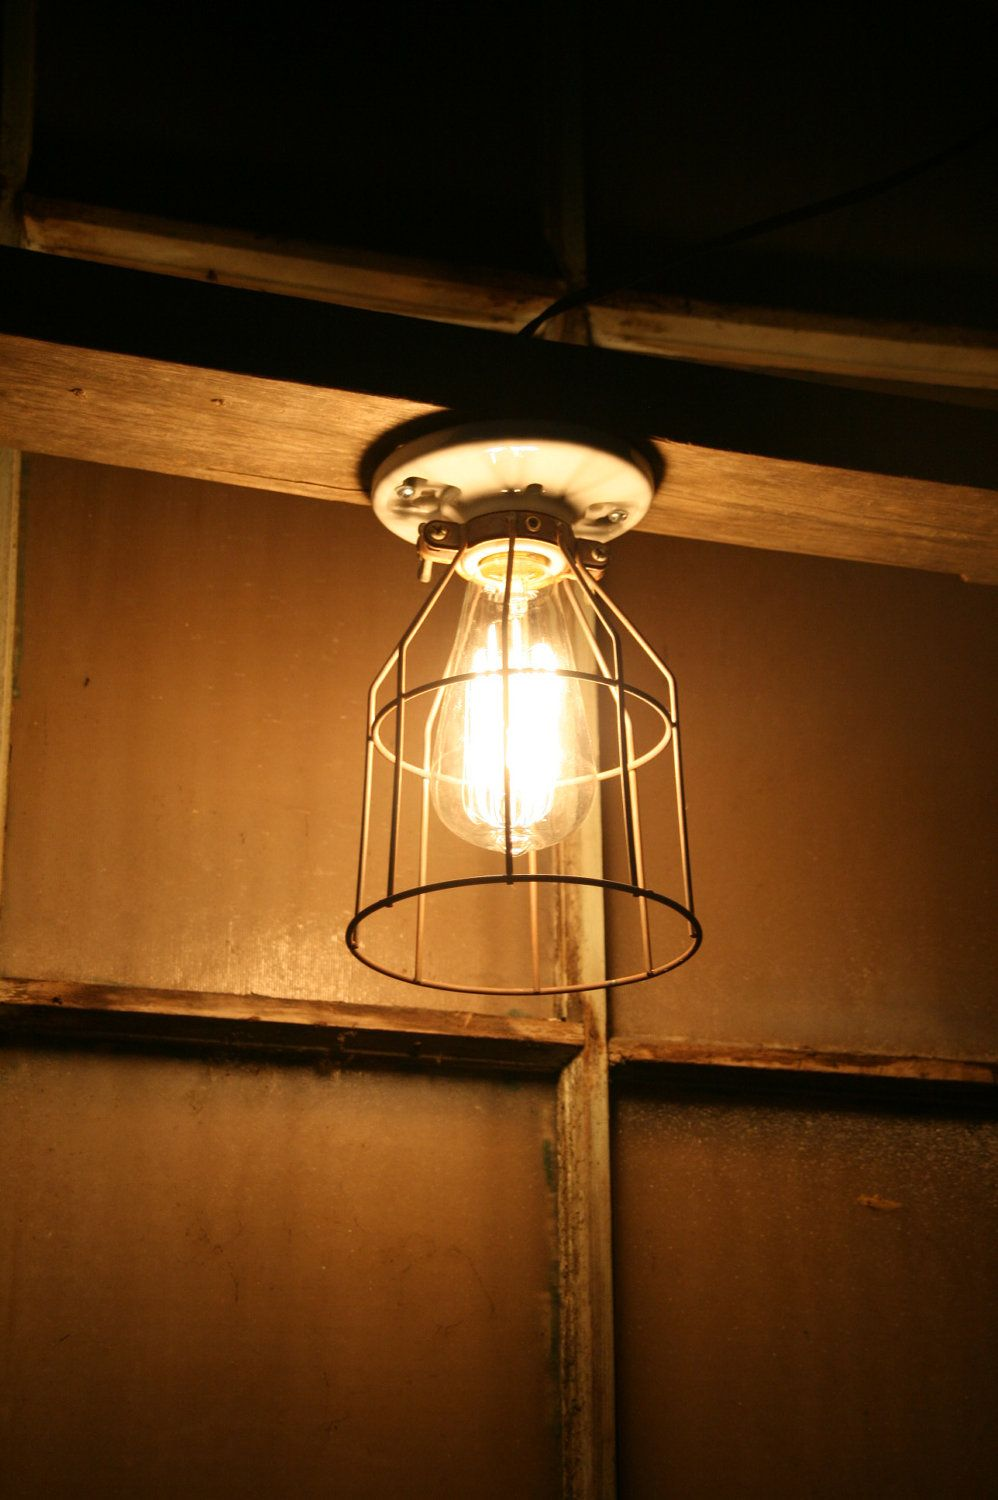 Industrial Light Vintage Style Porcelain Mount Fixture With Metal Wire Cage Guard Cage Light Fixture Cage Light Light